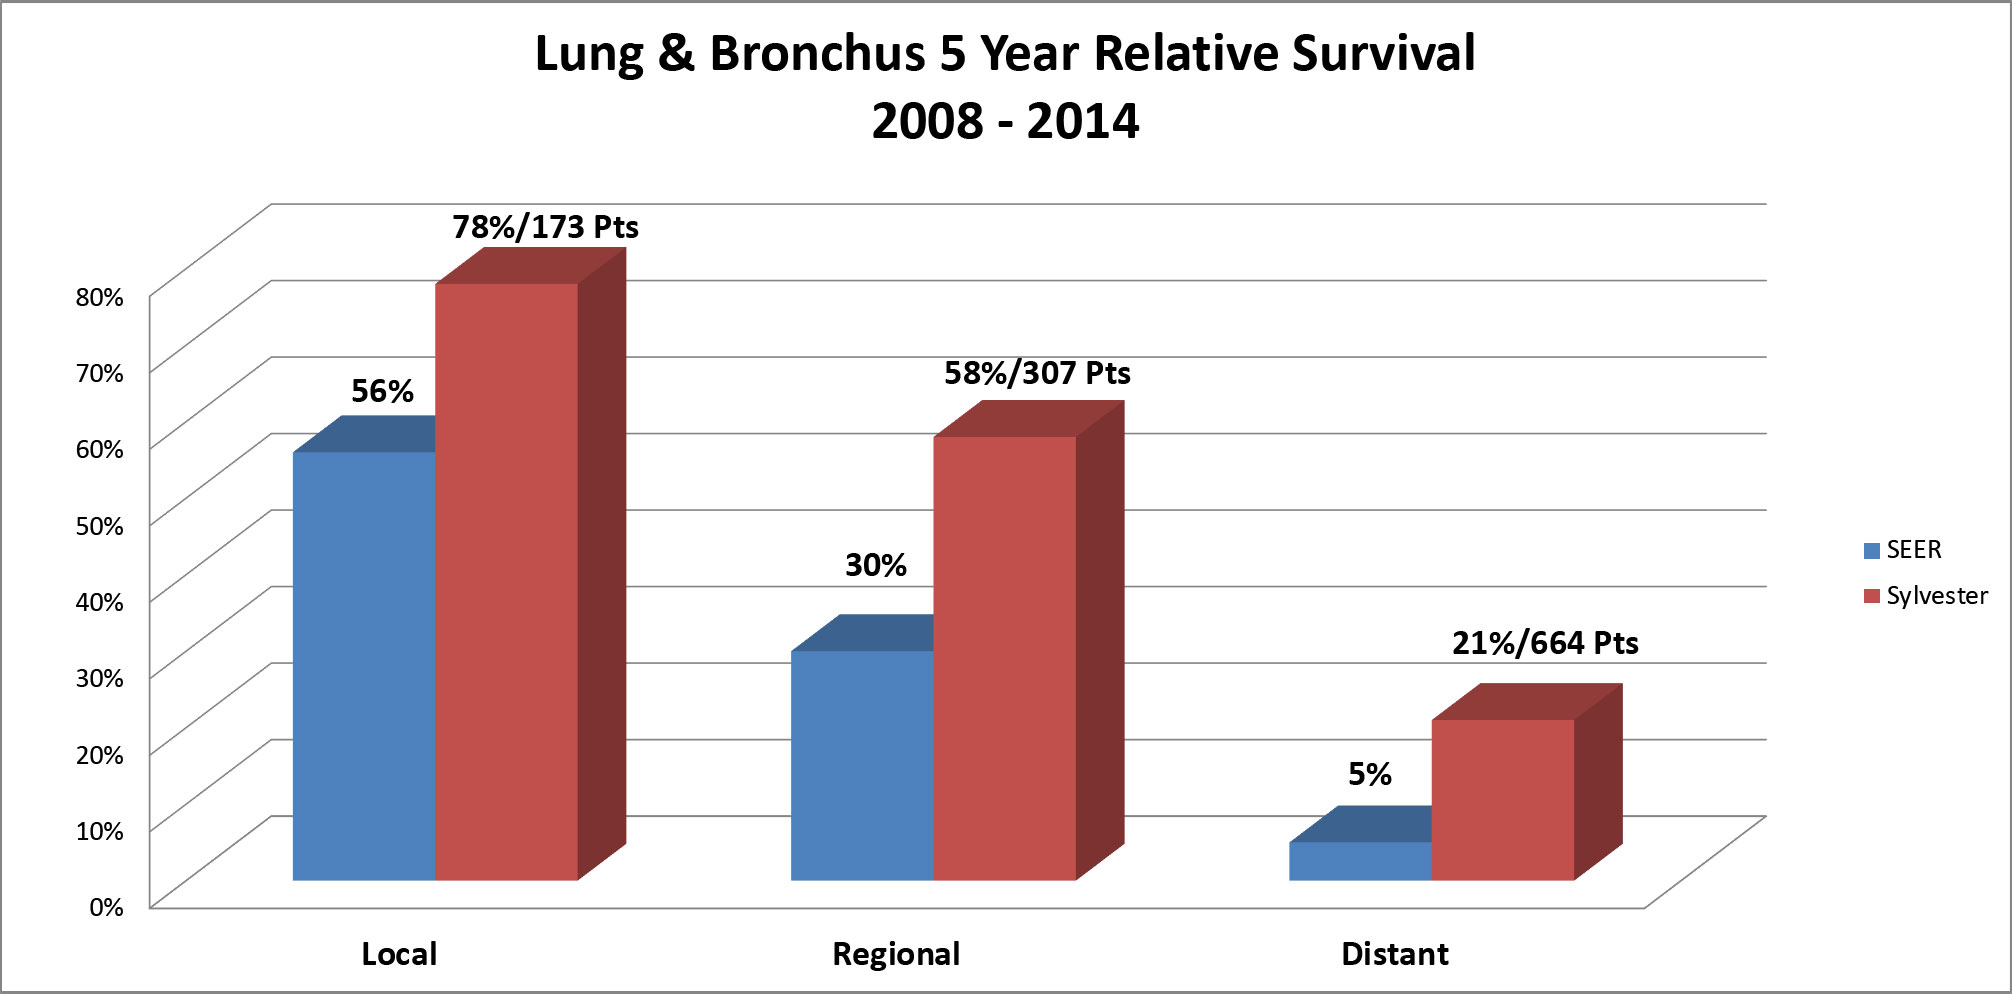 Lung and Bronchus